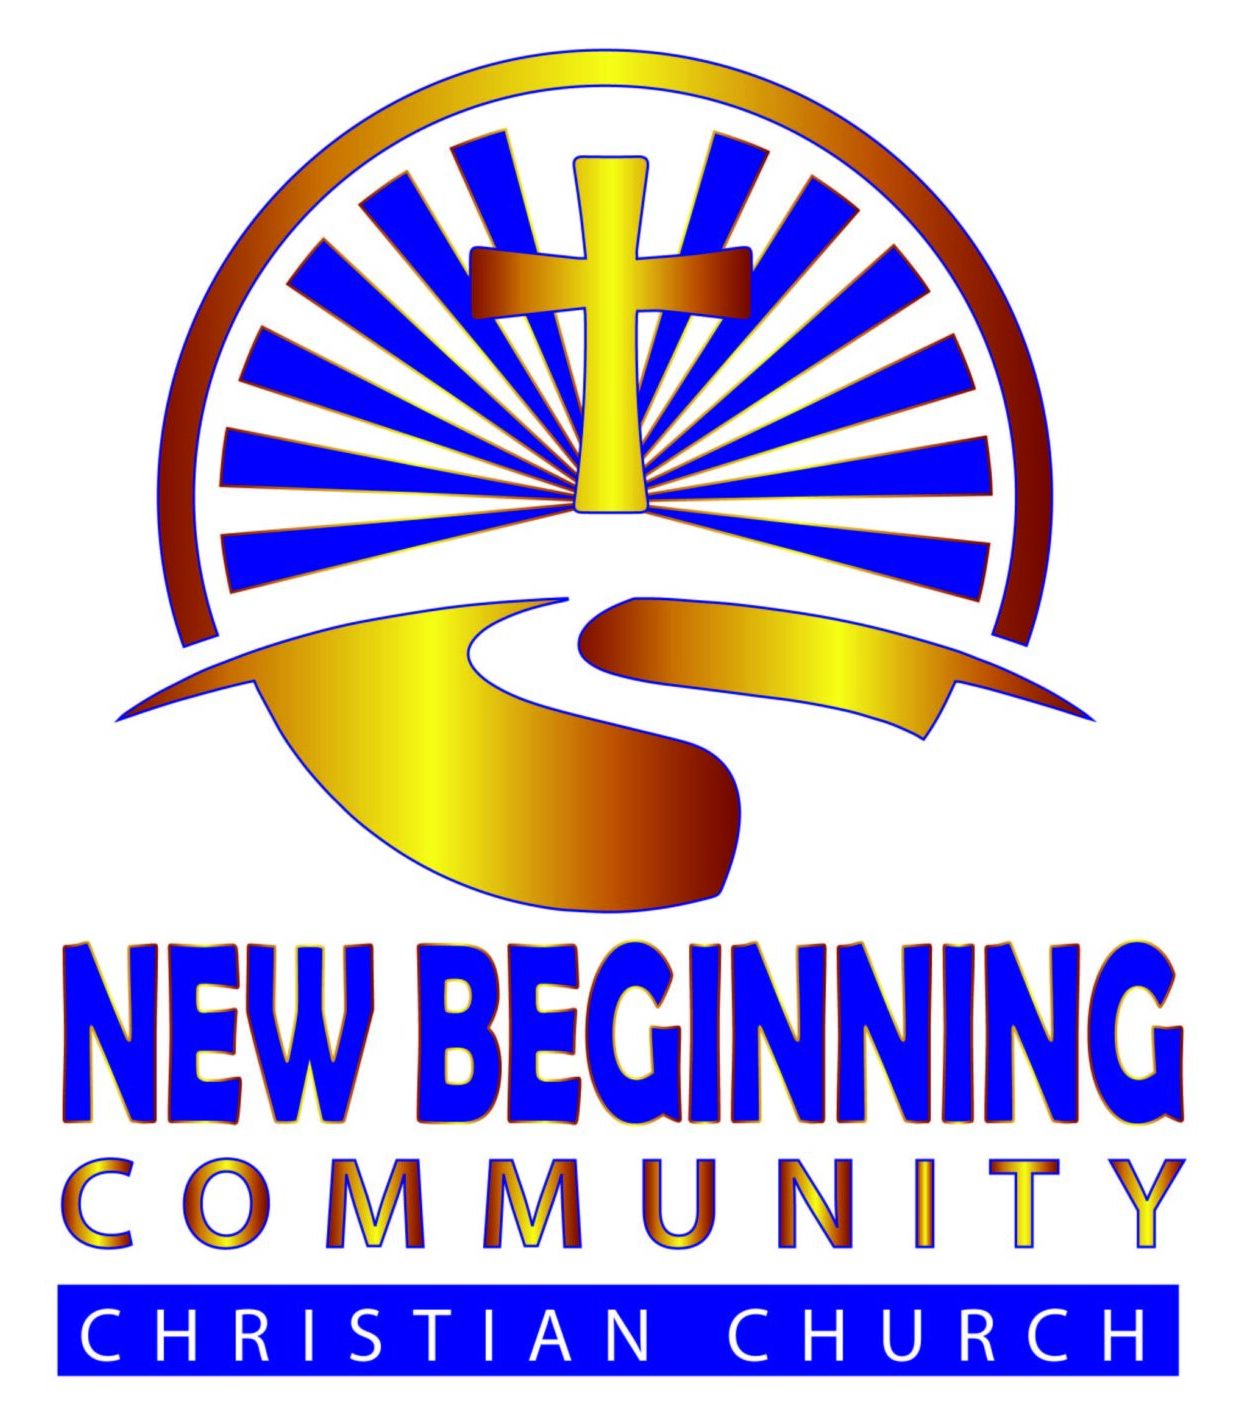 New Beginning Community Christian Church